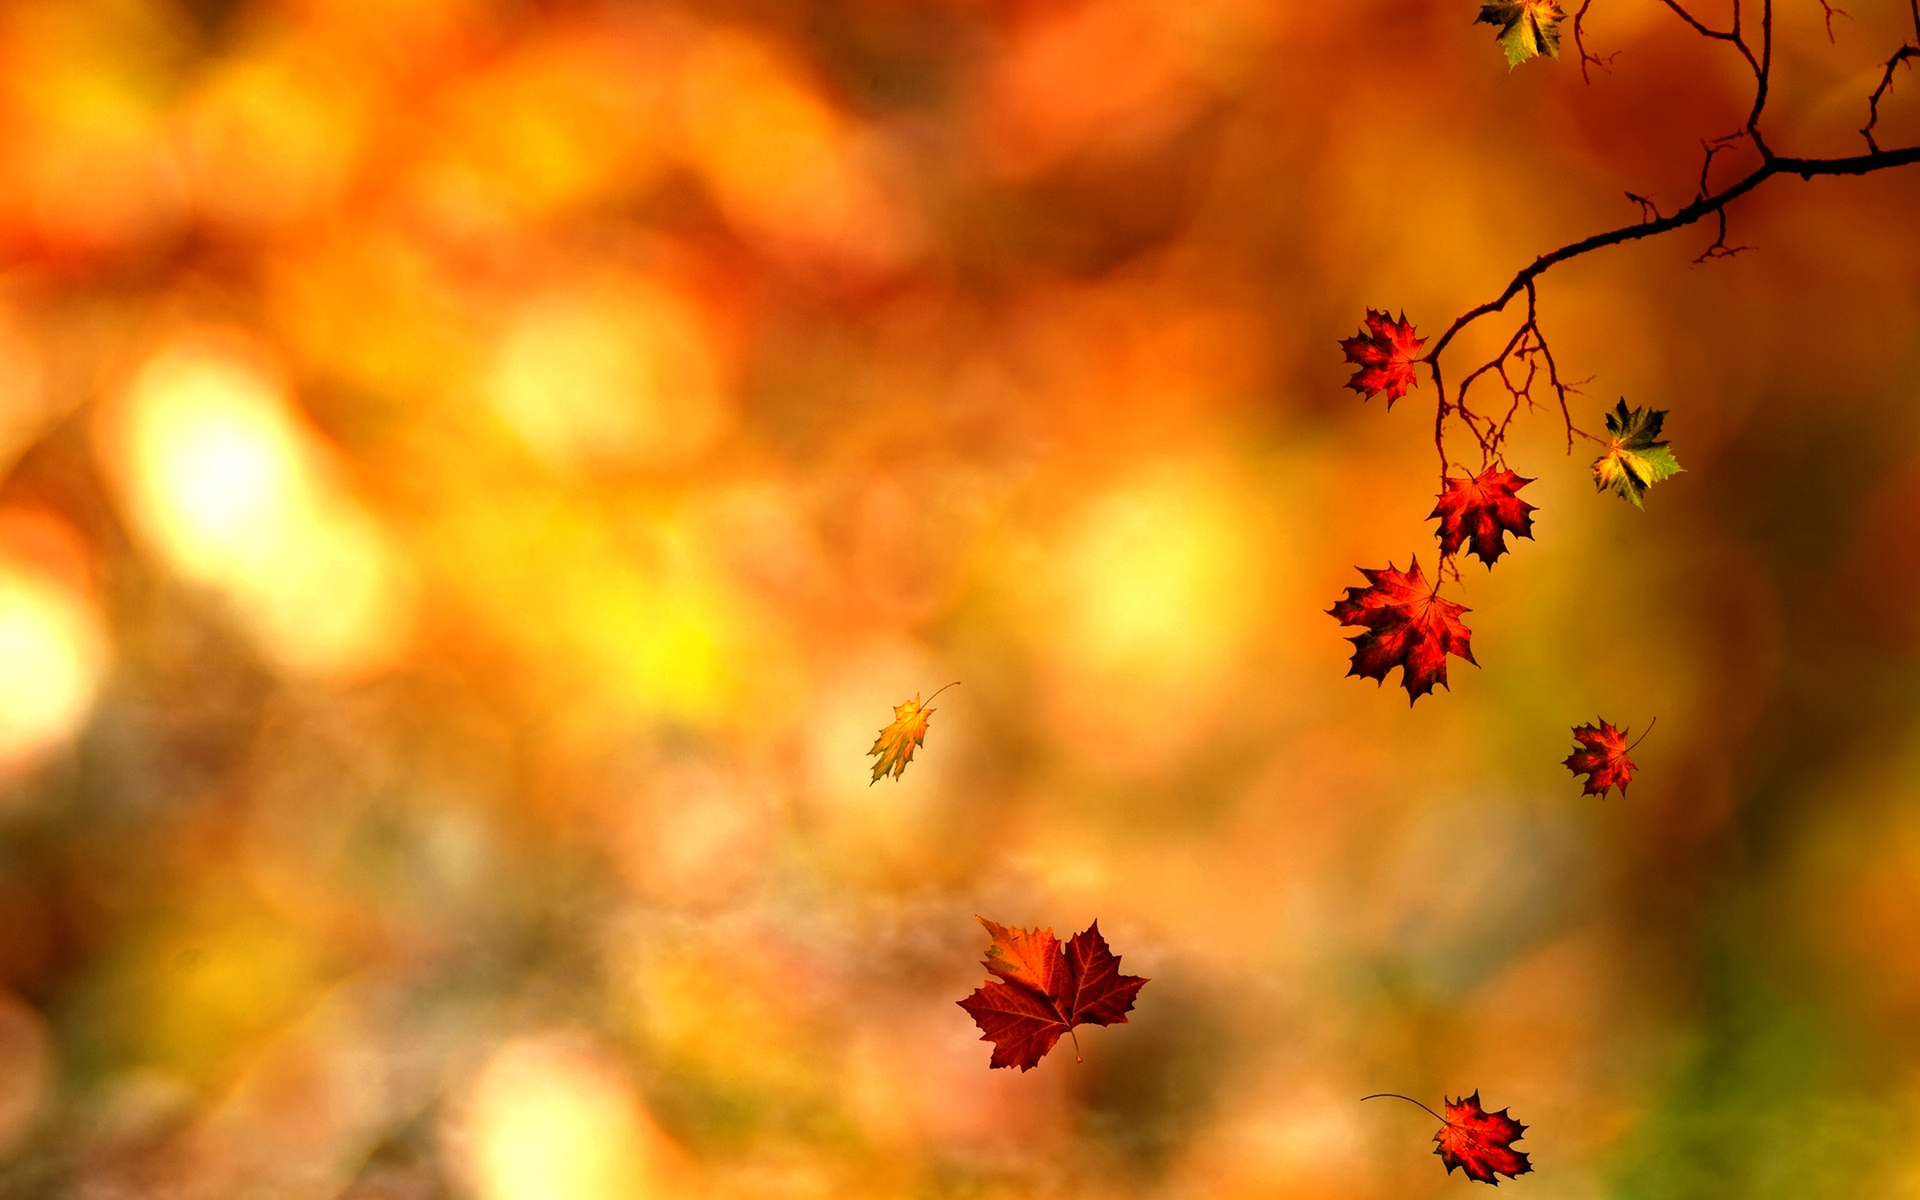 Awesome Autumn Leaf Wallpaper PC 064 2387 Wallpaper Wallpaper 1920x1200